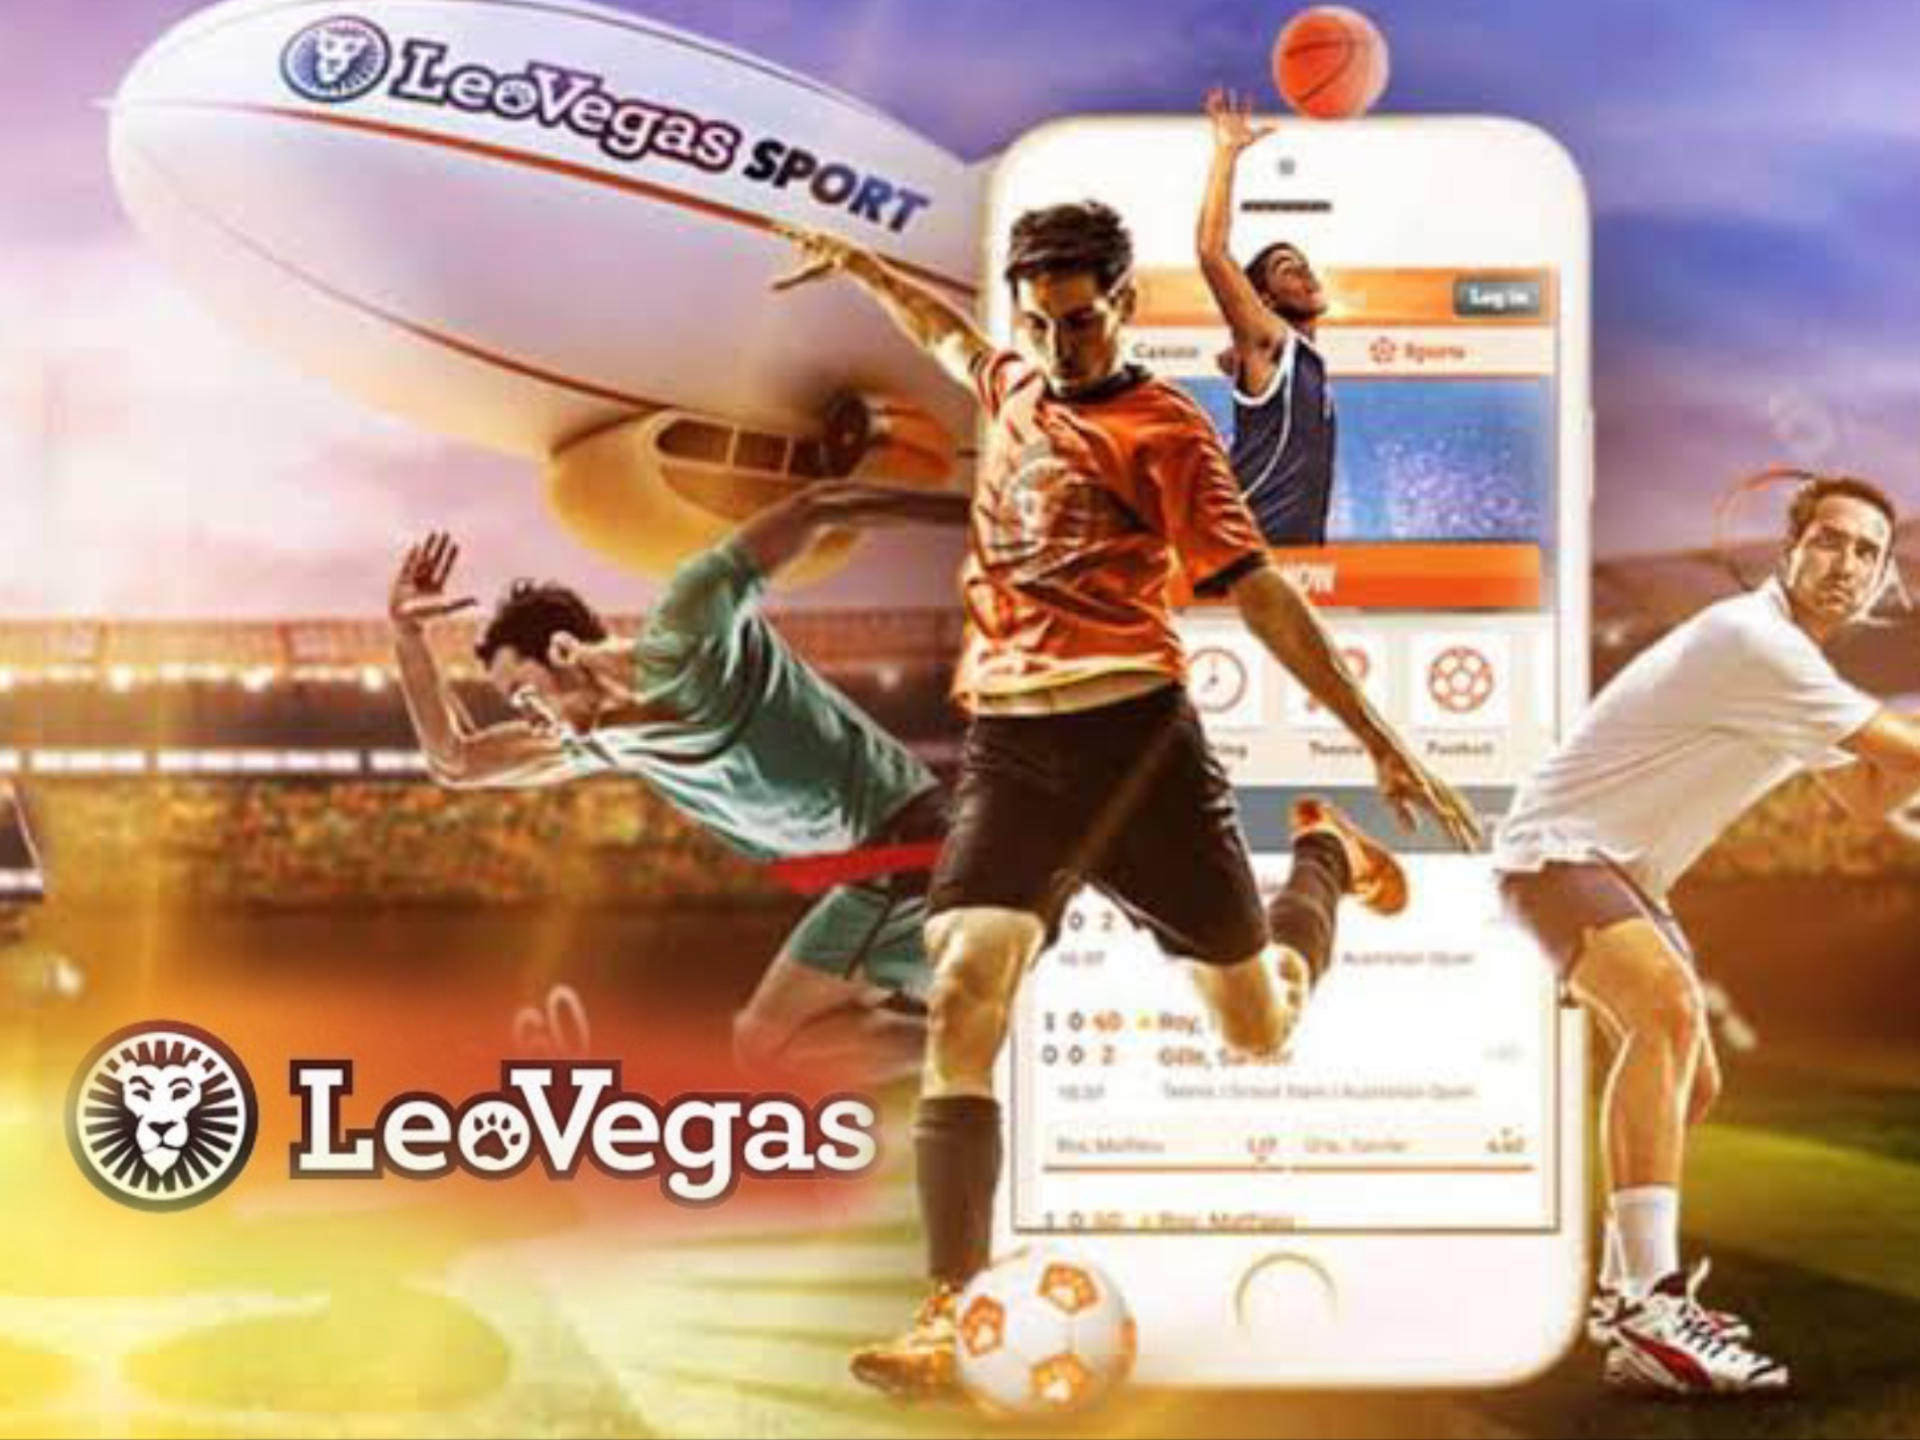 You will find profitable odds on different sports at LeoVegas.